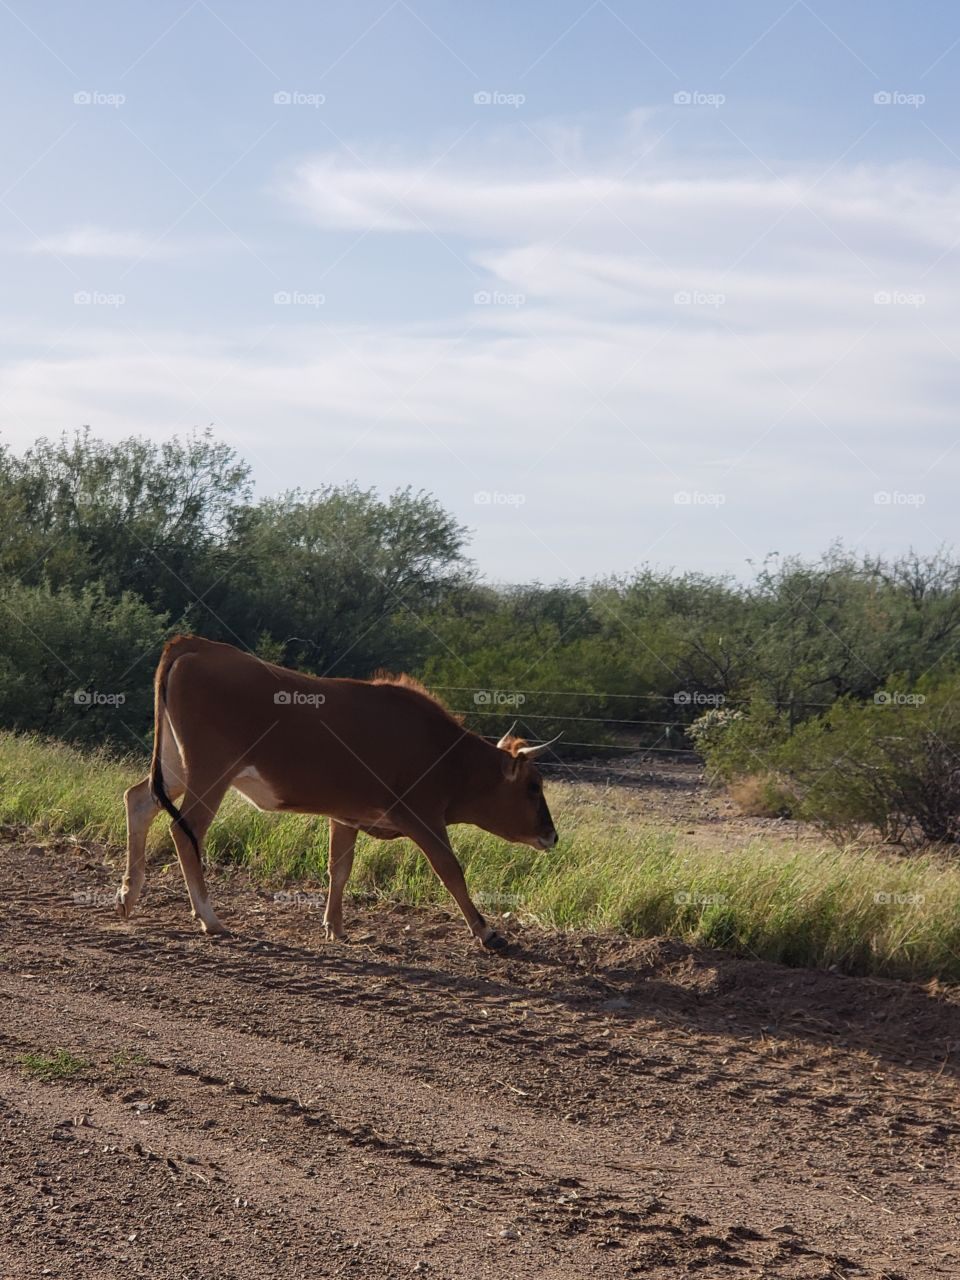 cow crossing in front of us on the road